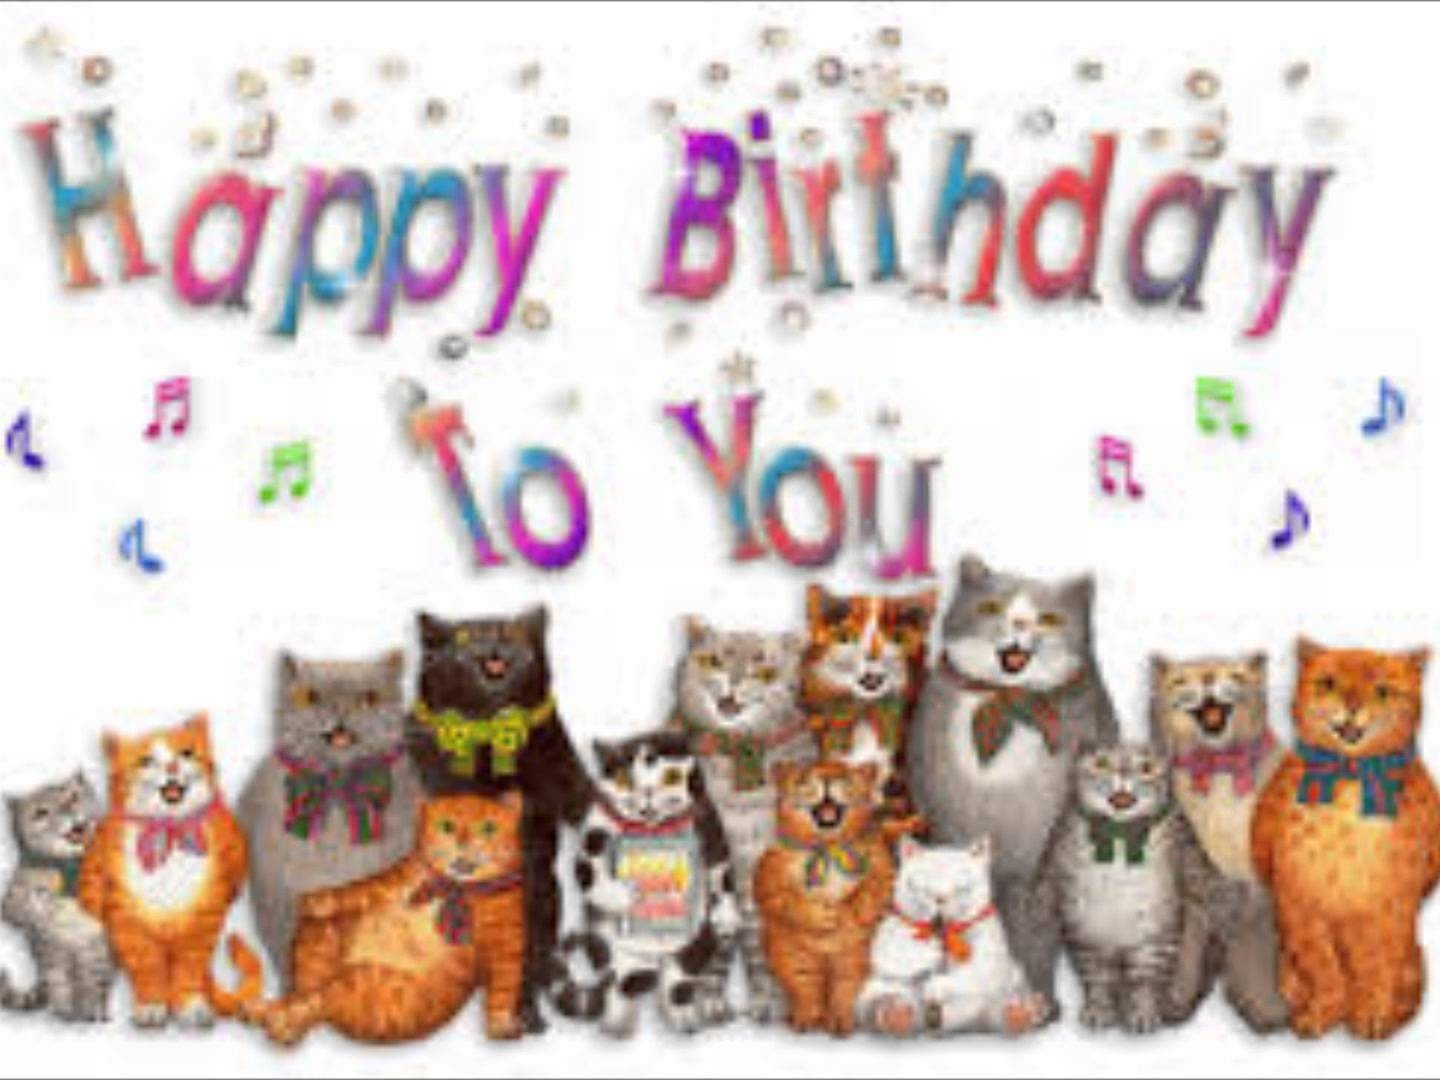 Cats birthday clipart image freeuse library Within Clip Art Cat Happy Birthday Maxresdefault 13 | Clip Art image freeuse library